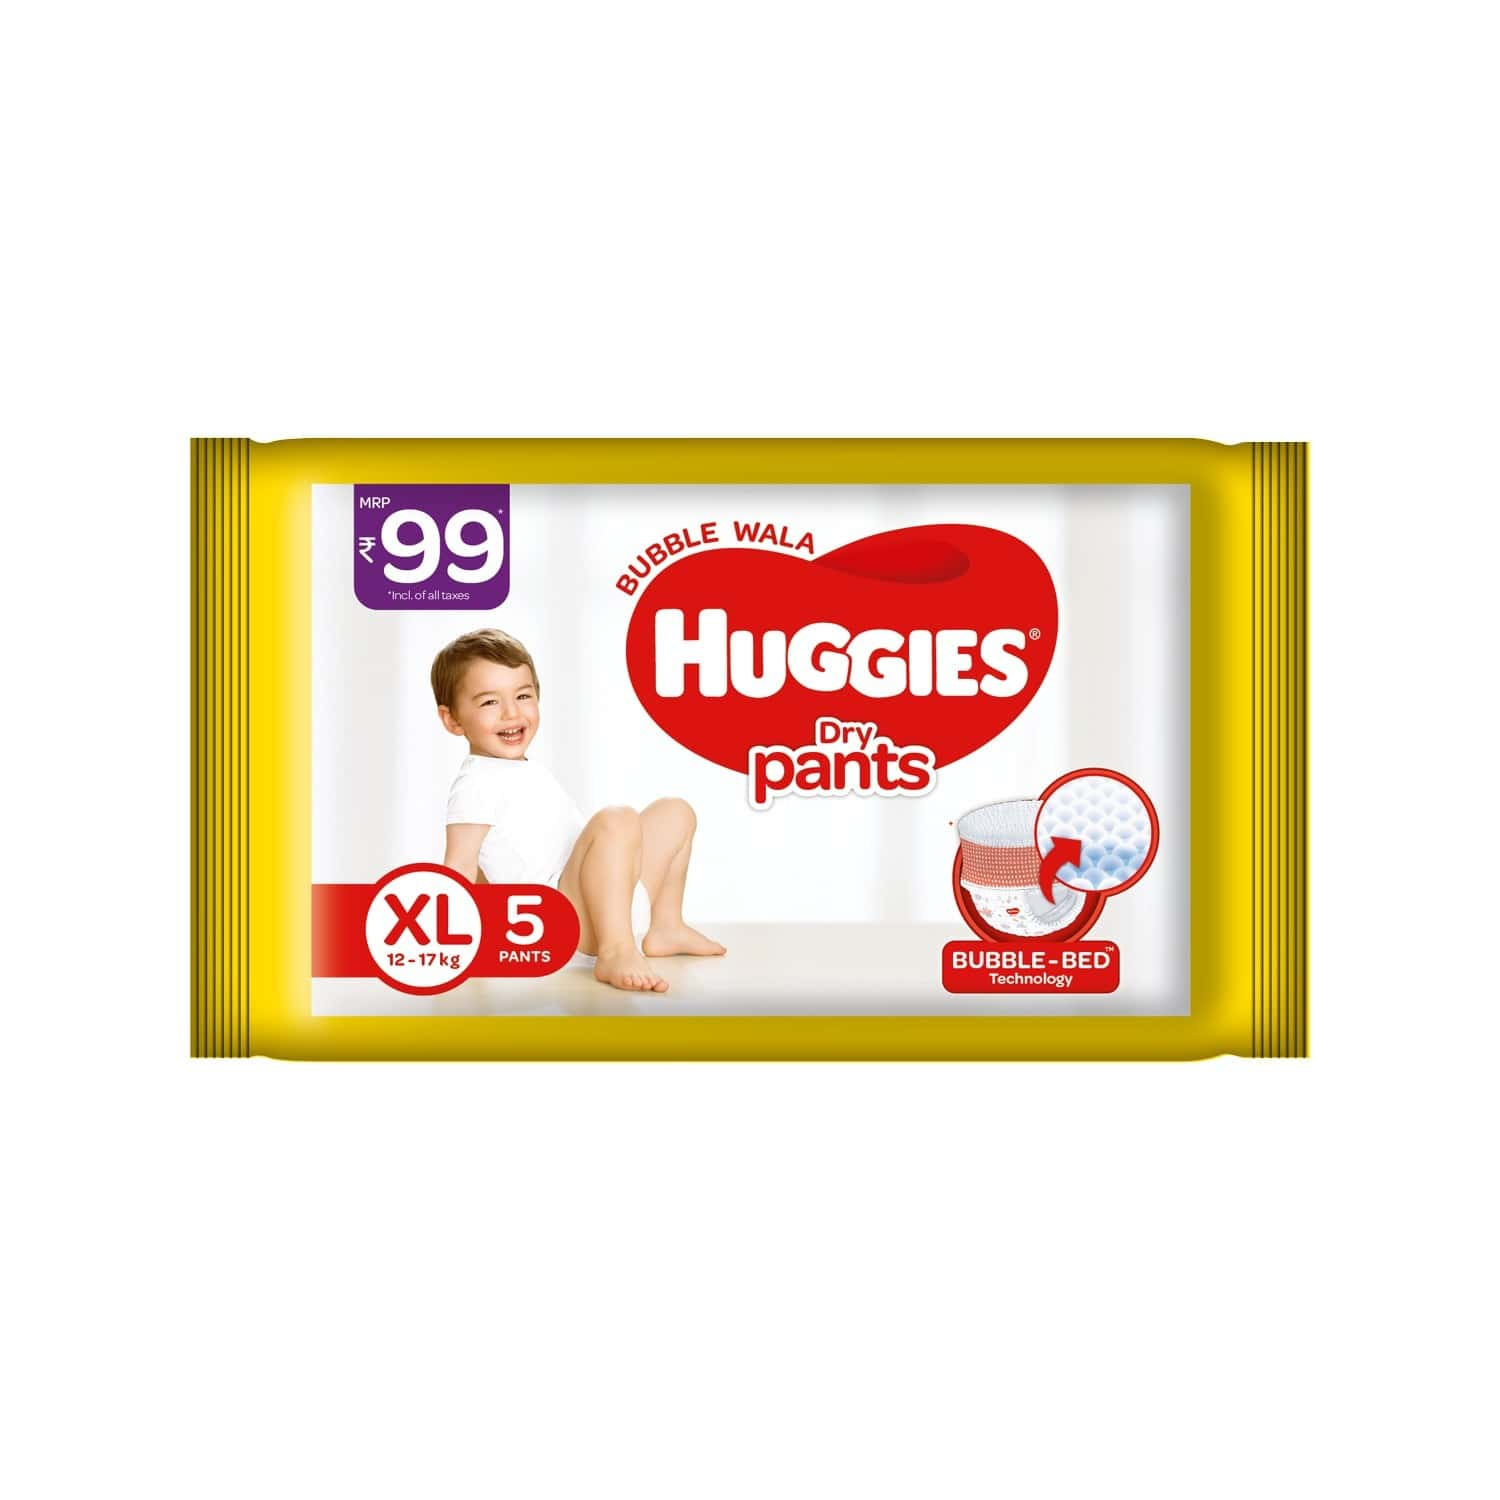 Huggies Dry Pants Diapers ( Extra Large Size) - 5 Count